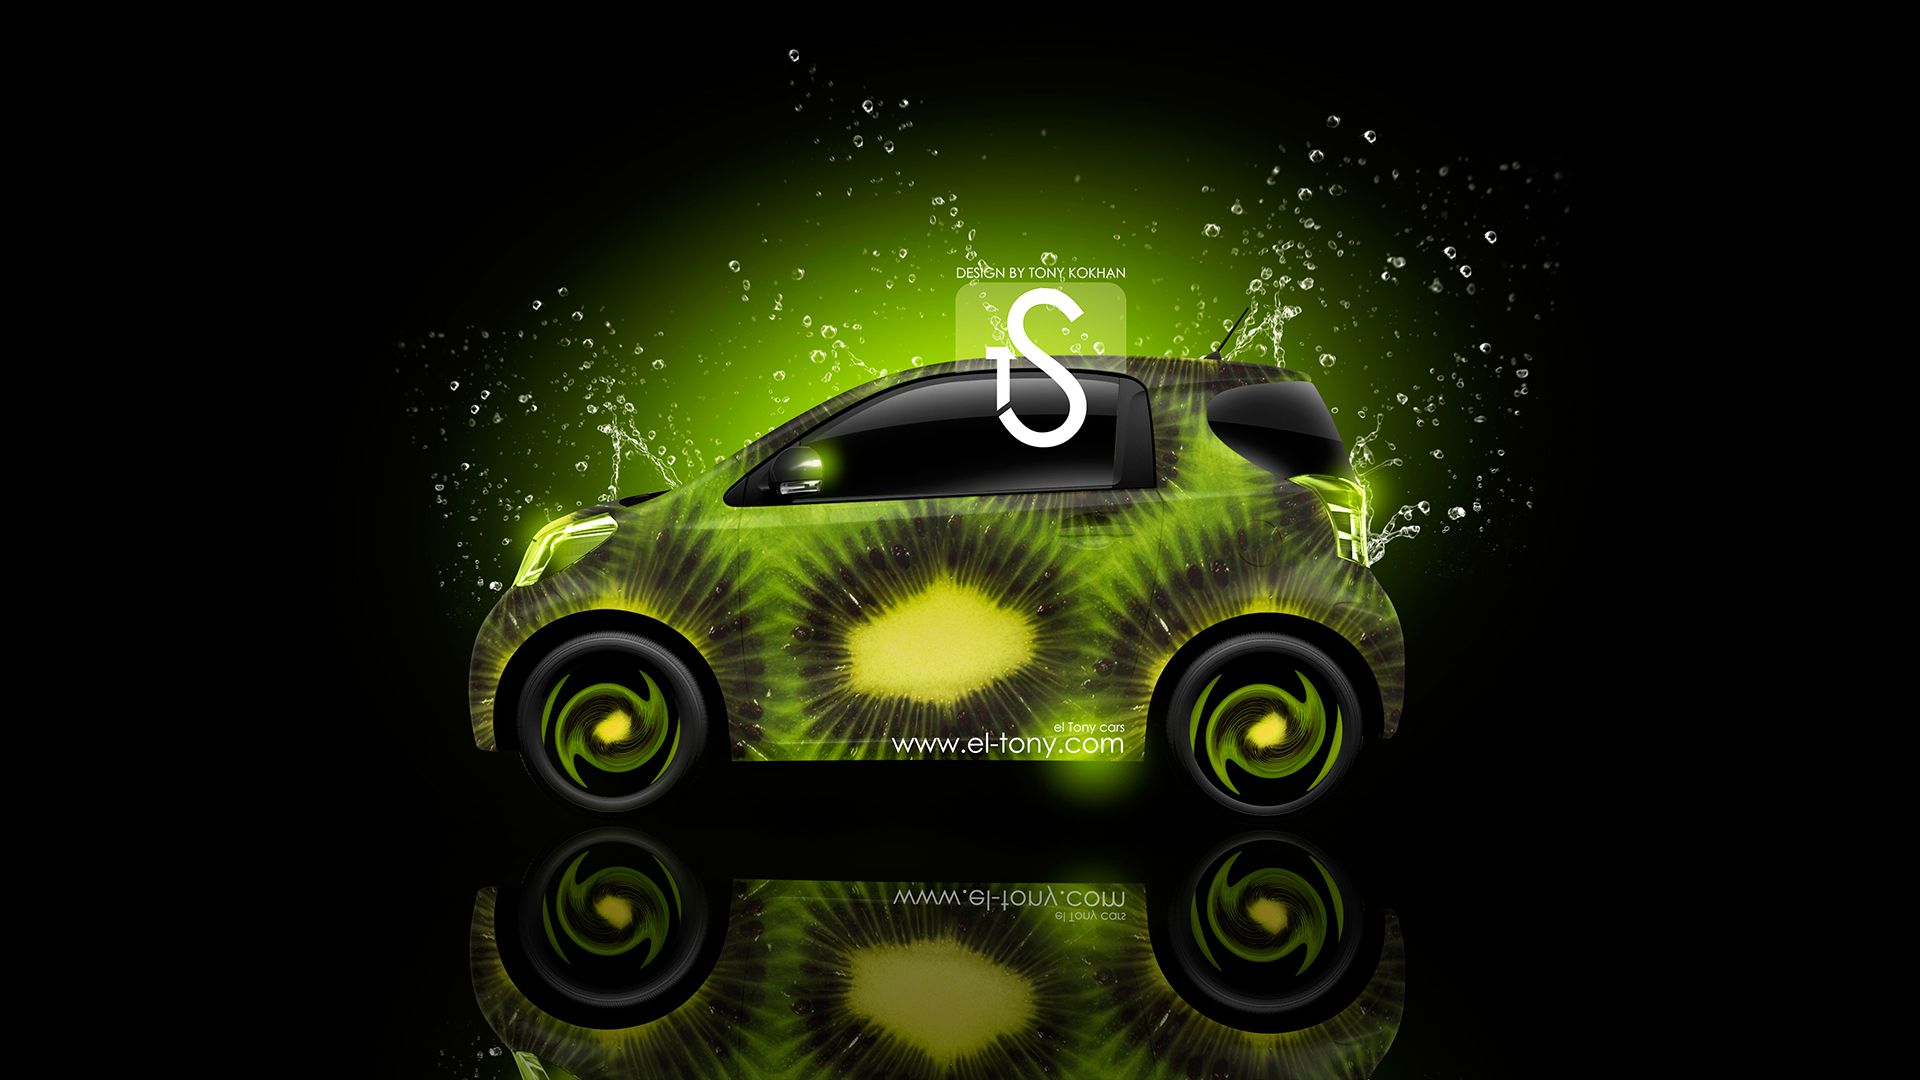 Charmant ... Toyota IQ Kiwi Car 2013 HD Wallpapers Design